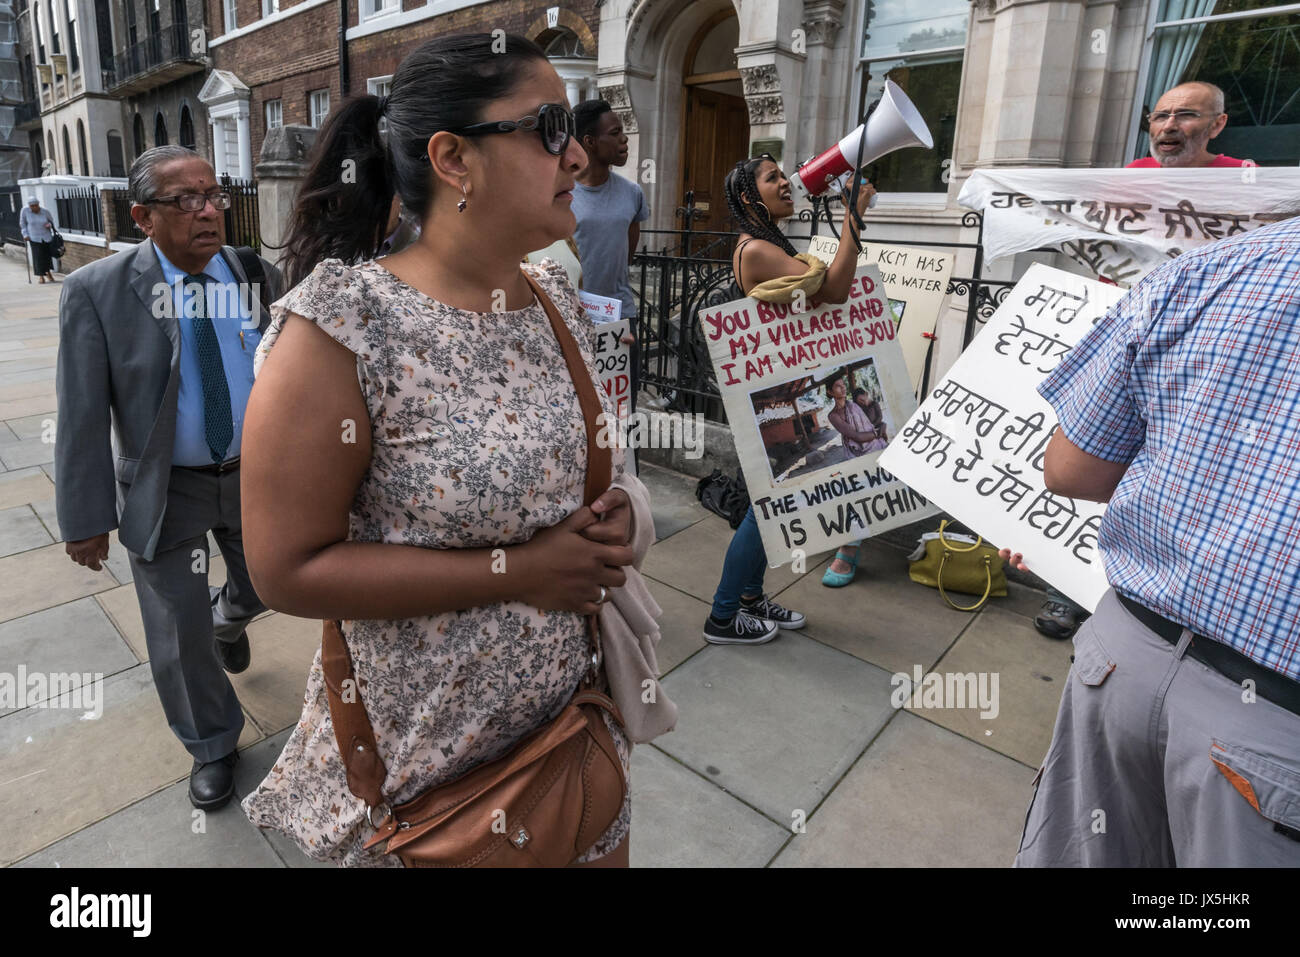 London, UK. 14th Aug, 2017. London, UK. 14th August 2017. People attending the Vedanta AGM walk past the noisy protest by grass roots campaign Foil Vedanta. The protesters accuse Vedanta of illegal mining in Goa, of increasing harassment, torture and false accusations against tribal activists in Nyamgiri, Odisha, who have used Indian laws to stop bauxite mining of their sacred mountain, eleven years of ruinous and continuing pollution by Konkola Copper Mines (KCM) in Zambia, where they say the company have fraudulently avoided taxes and failed to publish mandatory accounts and other offen - Stock Image